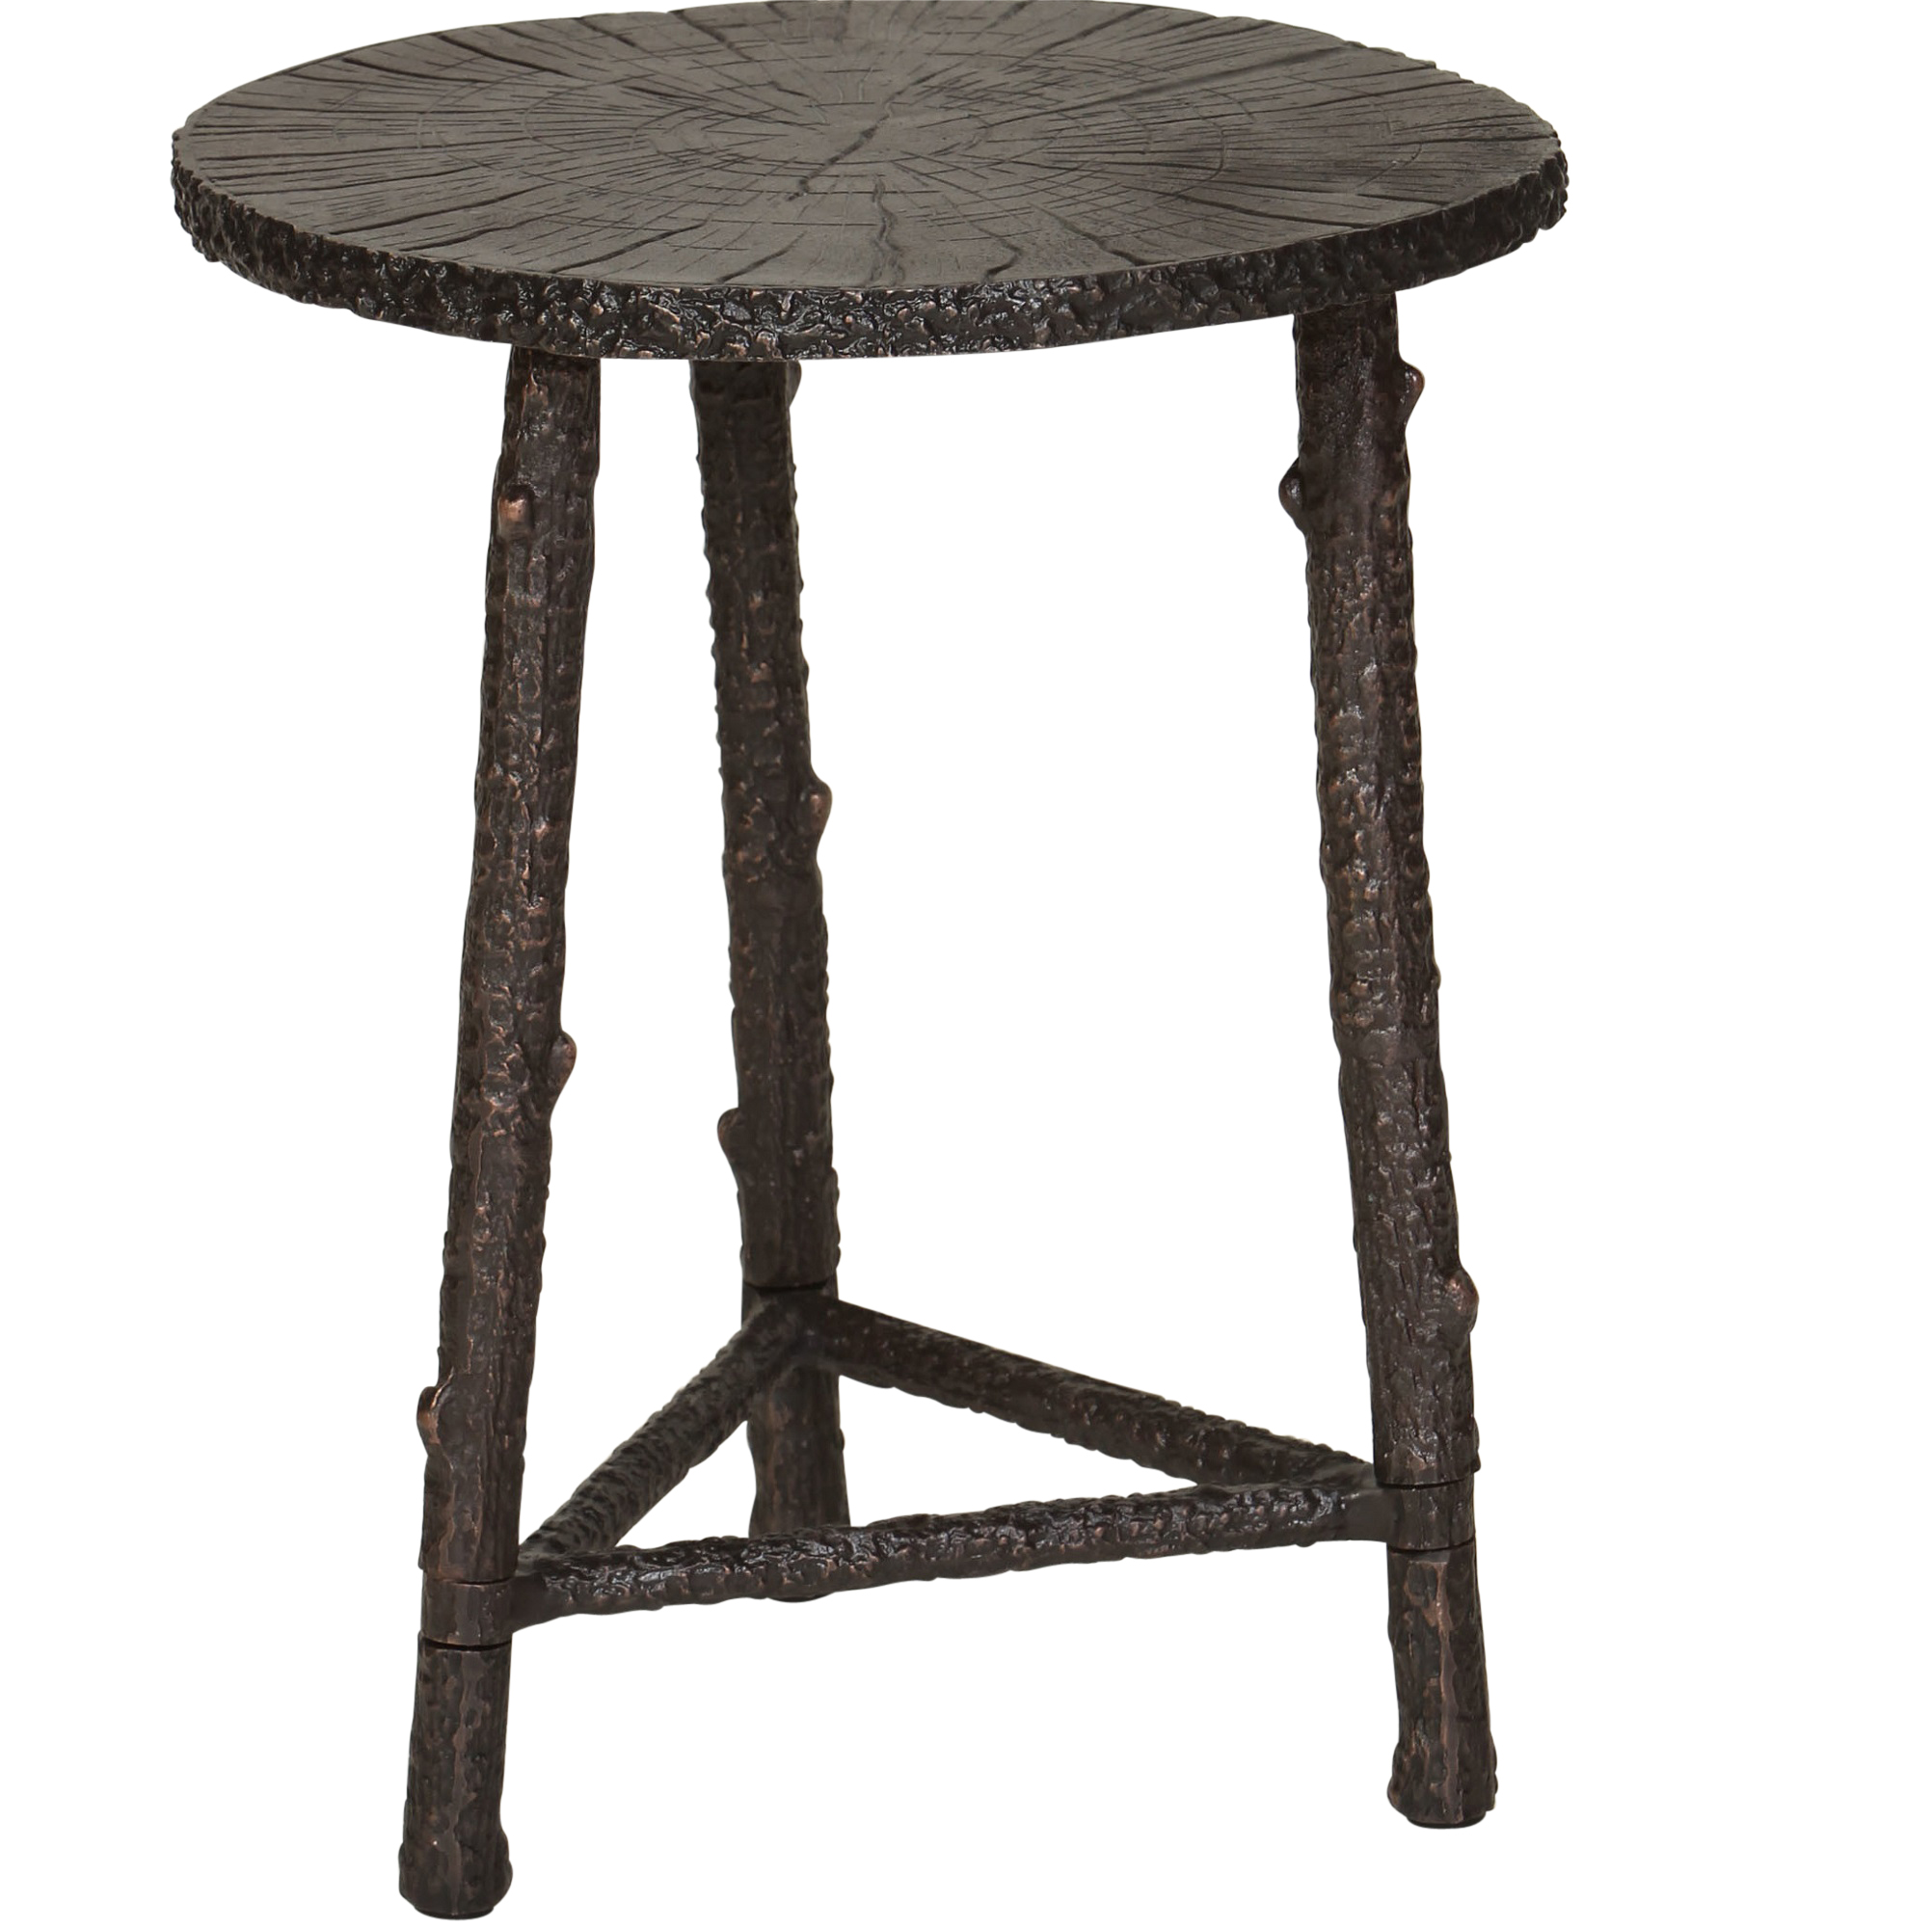 bronze aluminum accent table cabana home round coffee legs storage chest cement outdoor vintage wood set modern side percussion stool circle with drawers ikea simple dining room